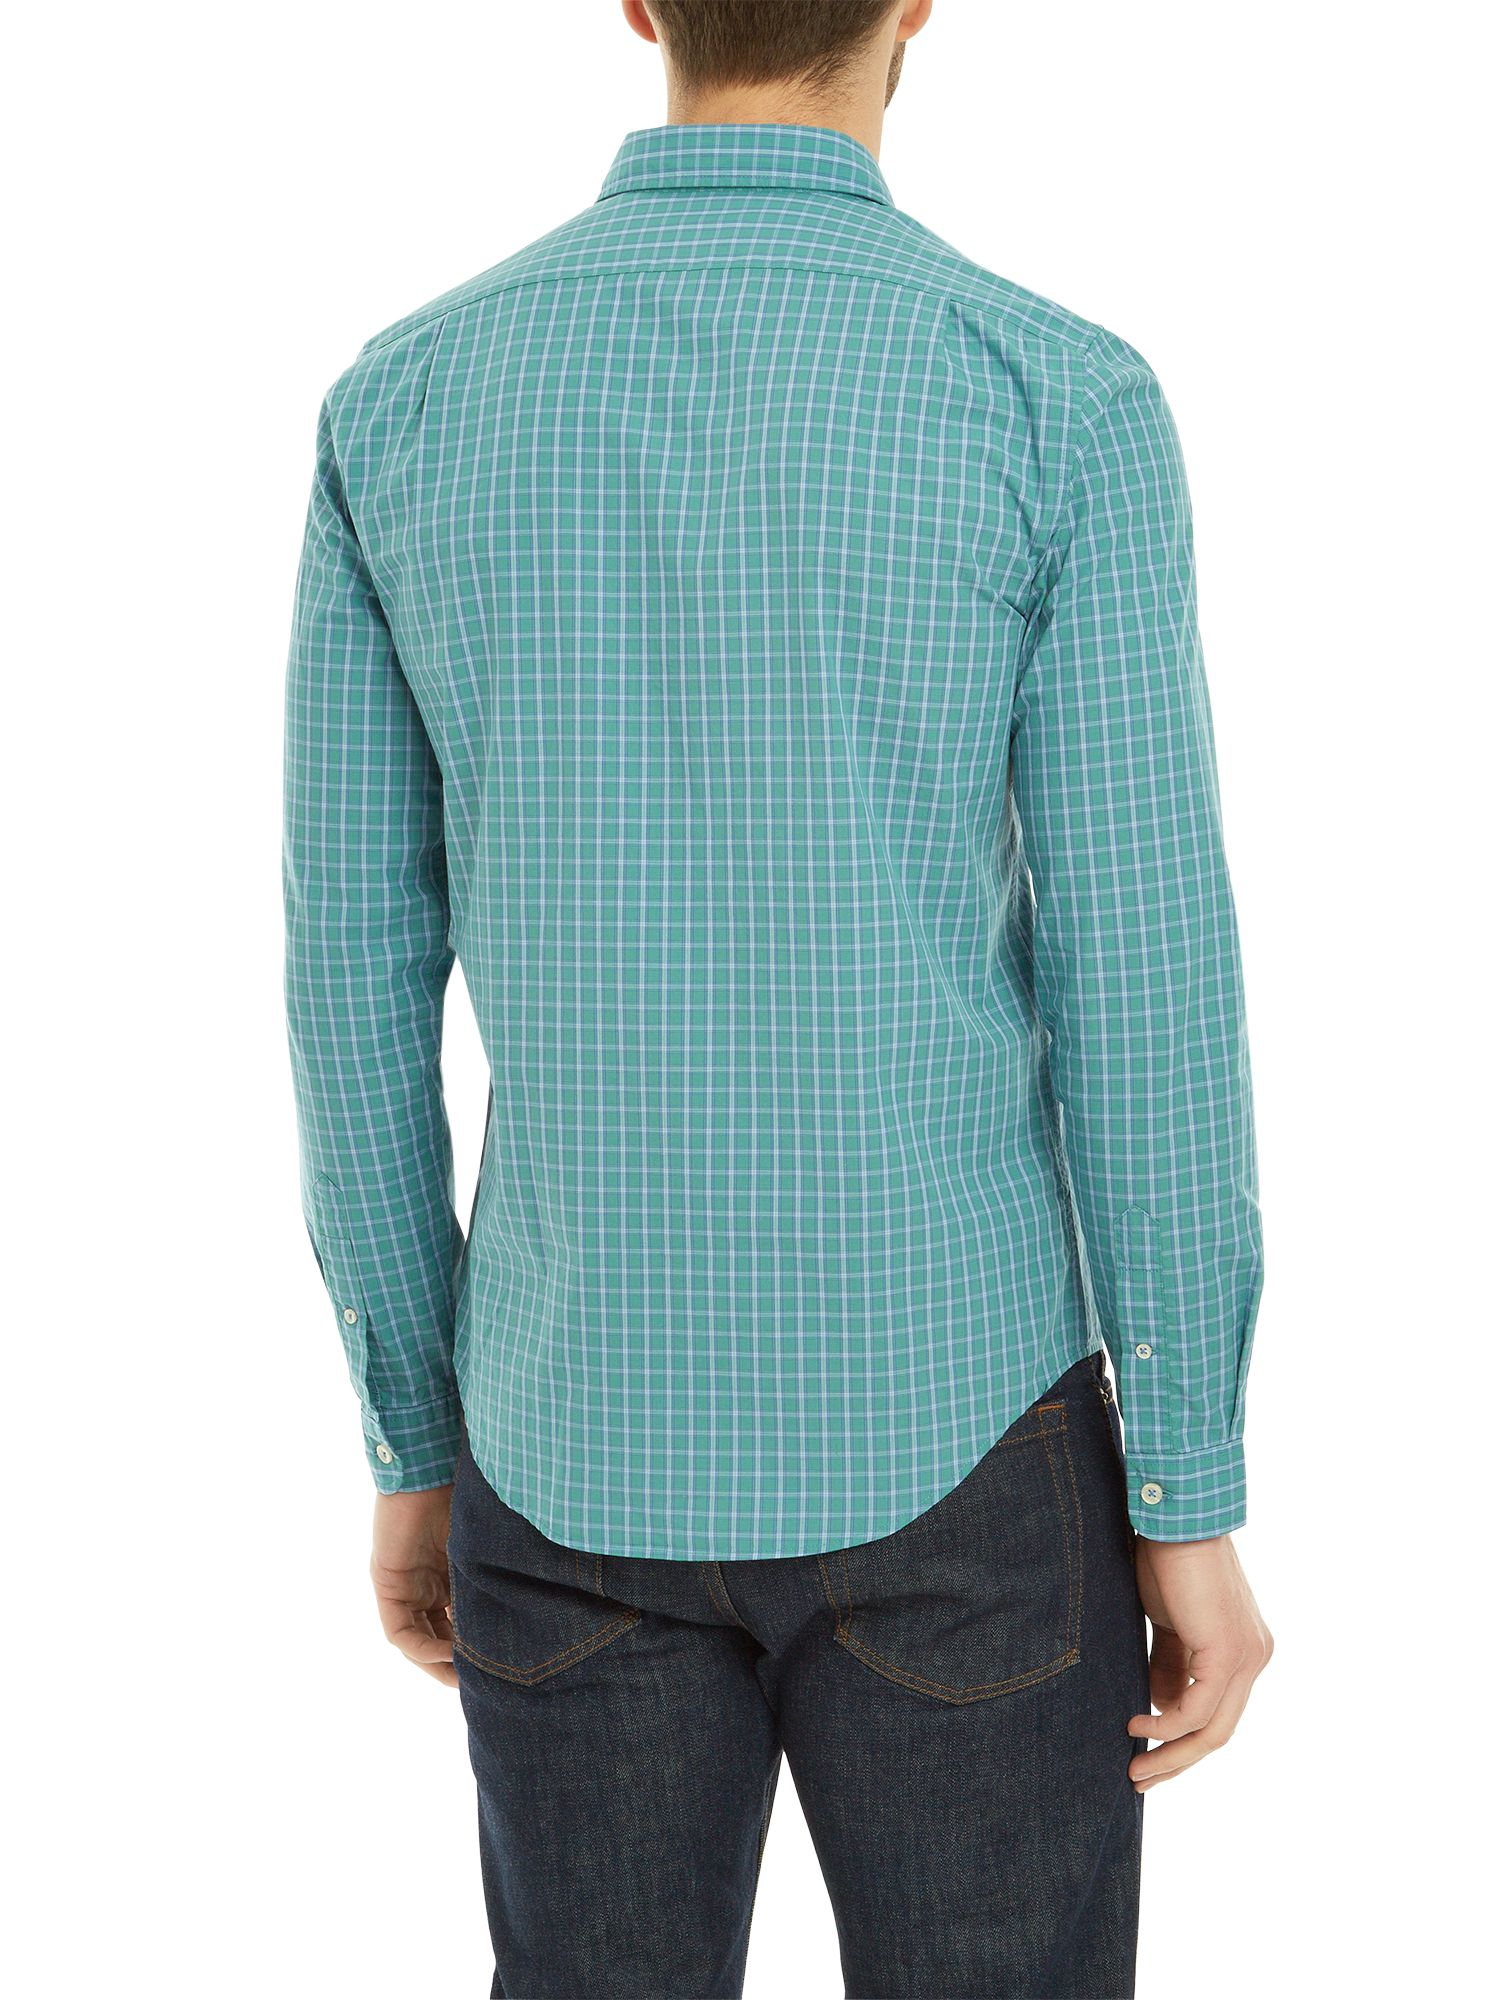 Lyst lacoste slim fit button down check shirt in green for Athletic fit button down shirts